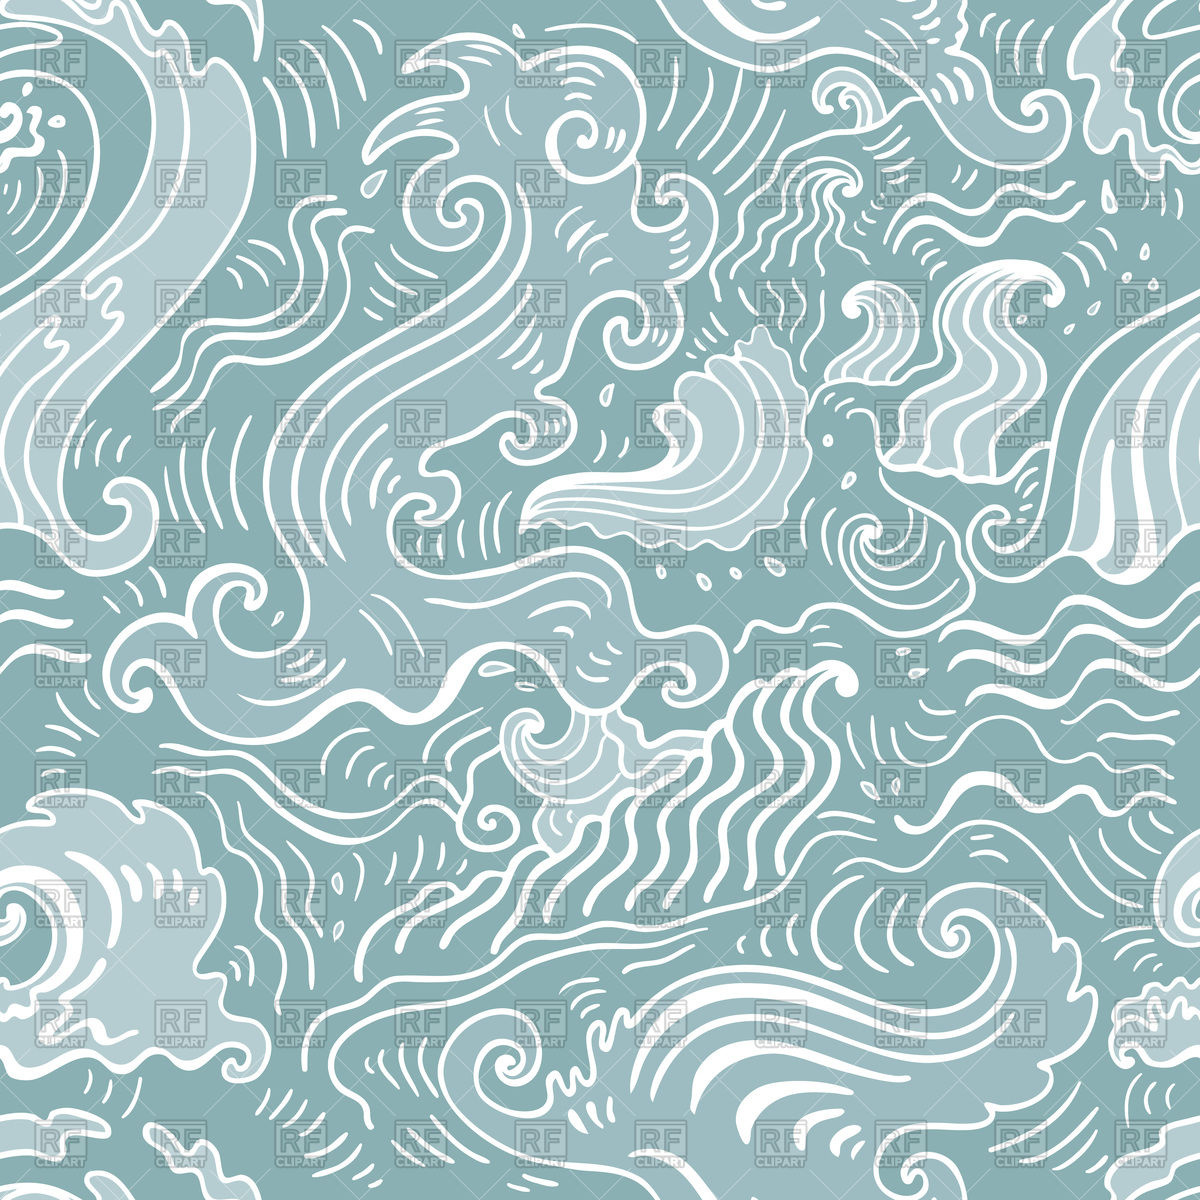 Seamless Wallpaper Pattern Vector Image Vector Illustration.